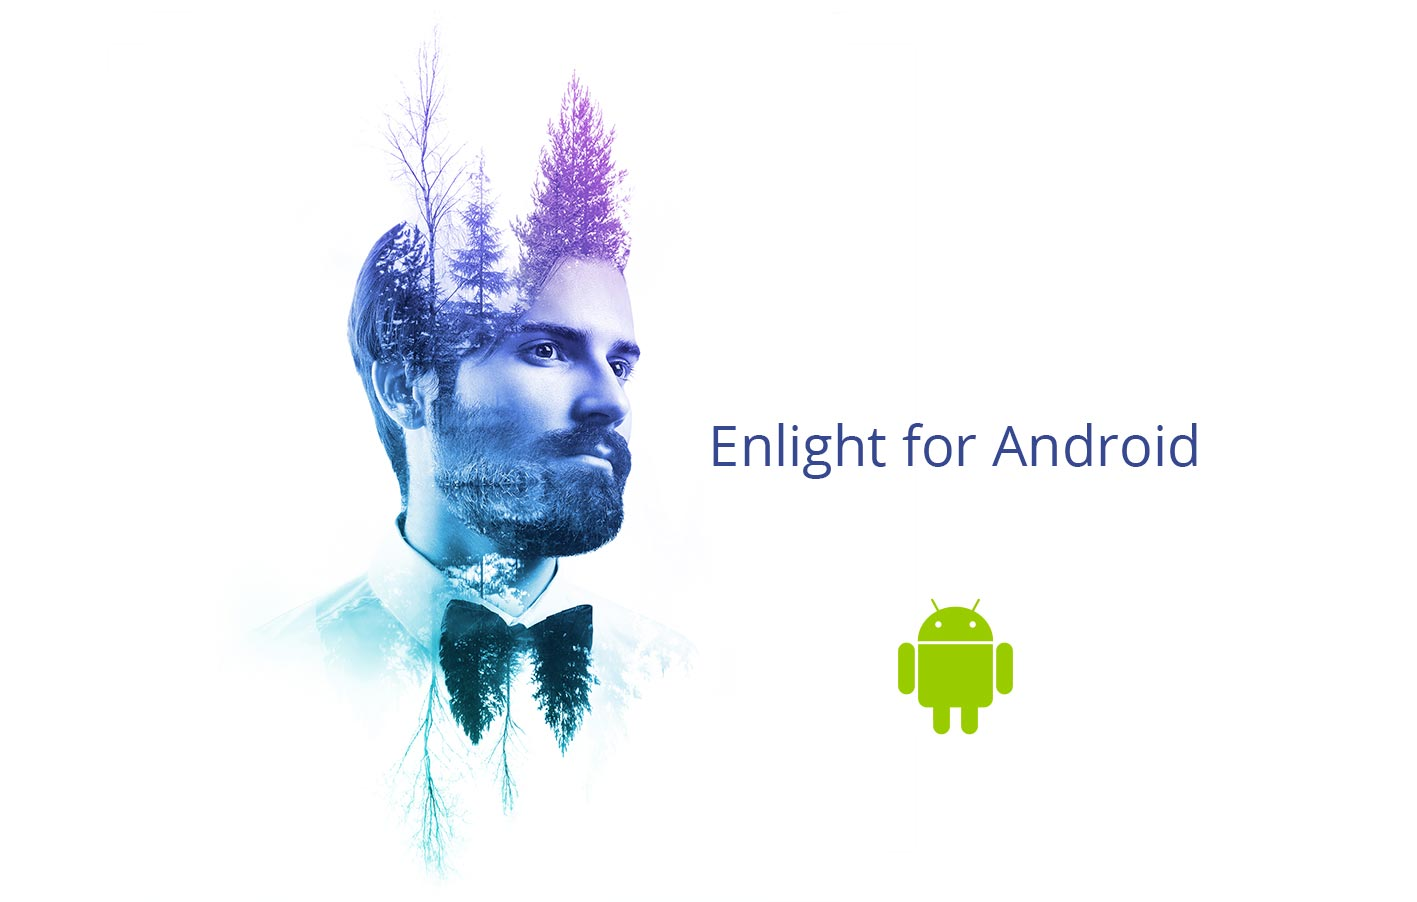 Enlight for Android